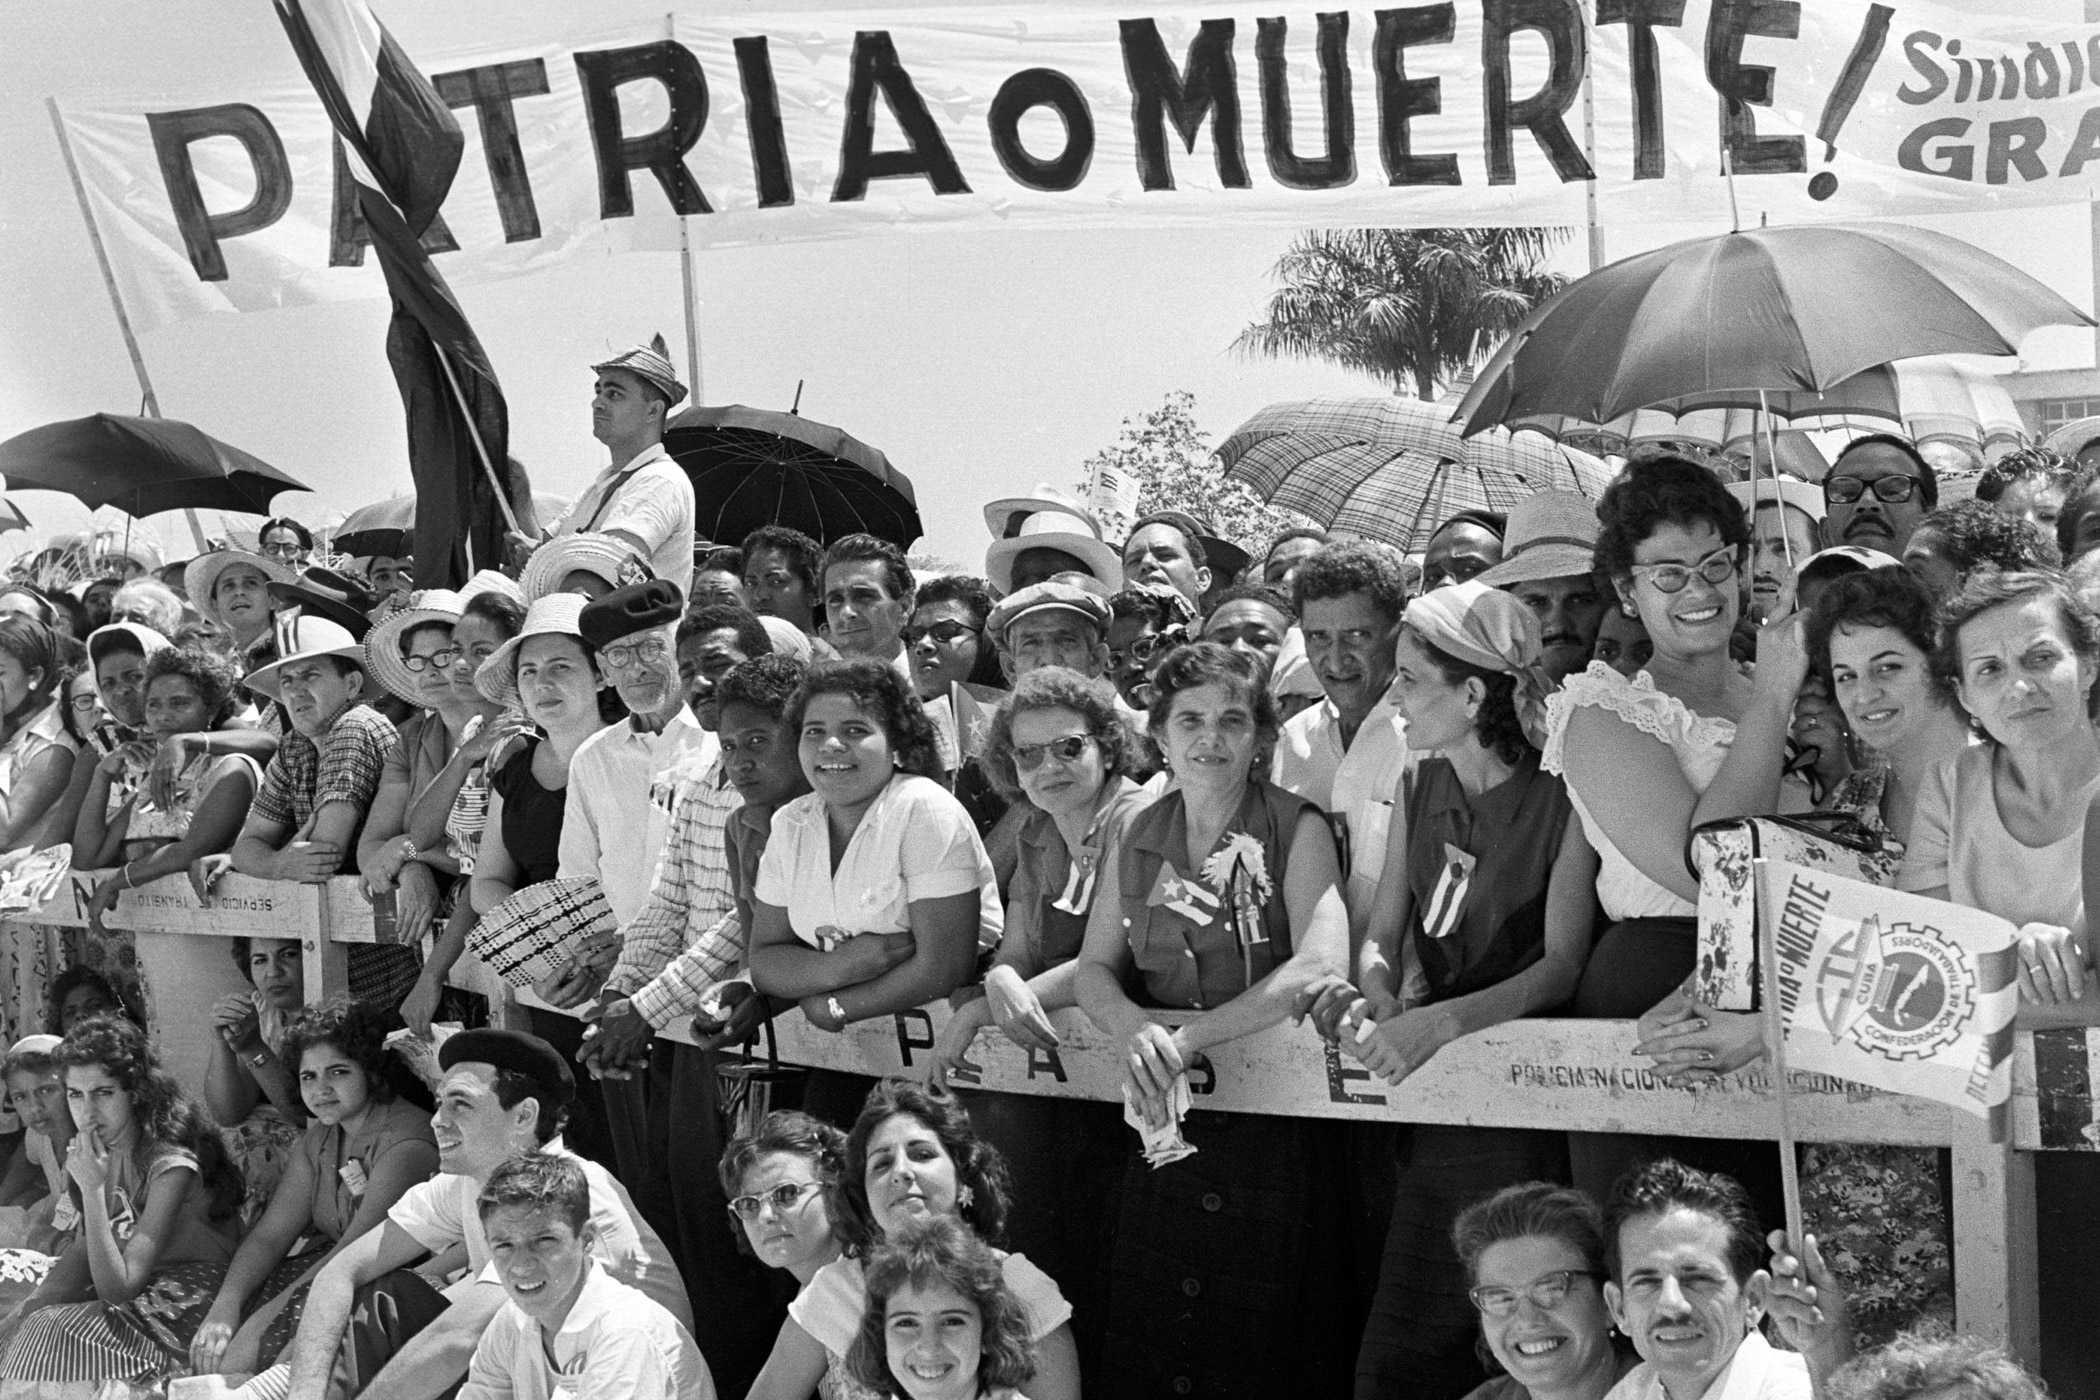 Cubans watch the May Day parade at the Plaza de la Revolucion in Havana on May 1, 1960.